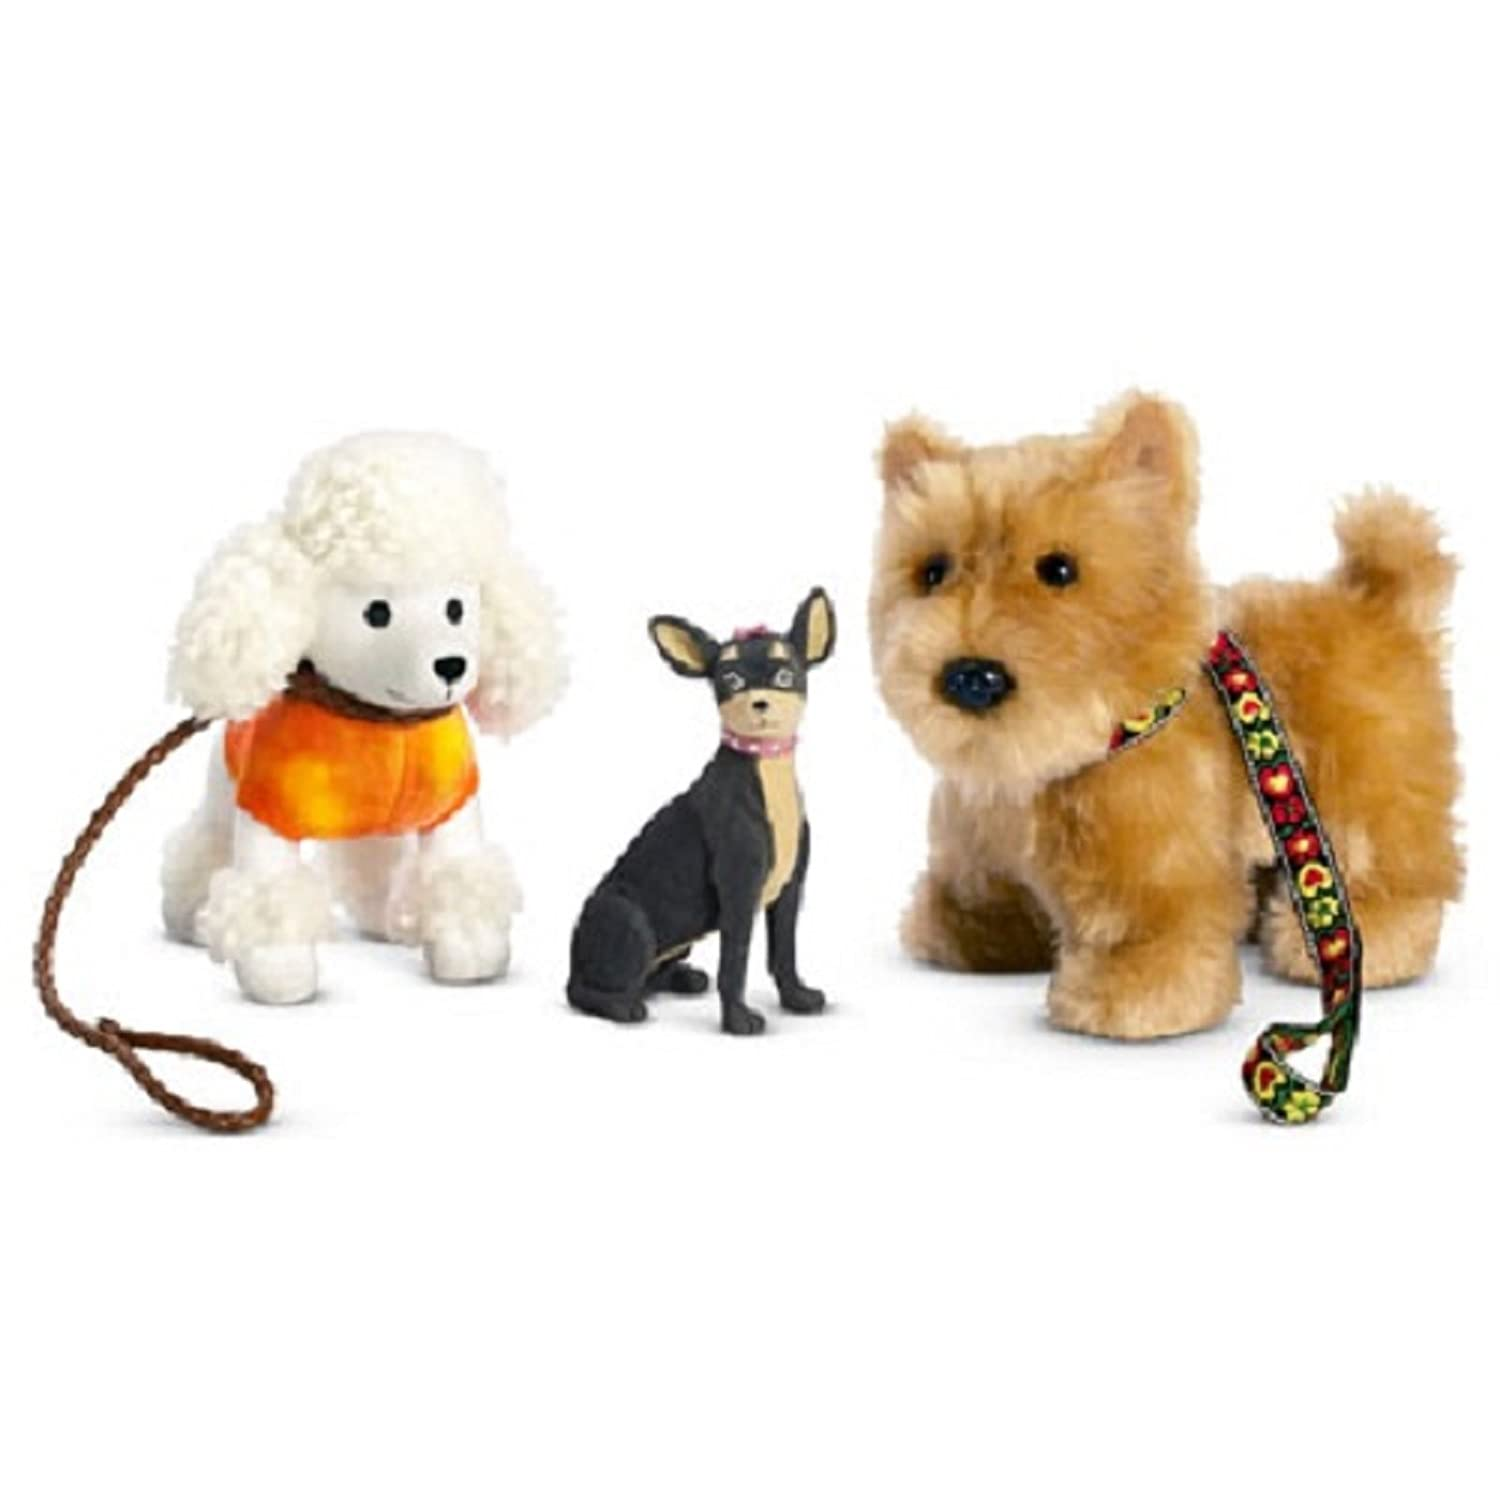 Amazon Julie s Dog Walking Set by American Girl Toys & Games